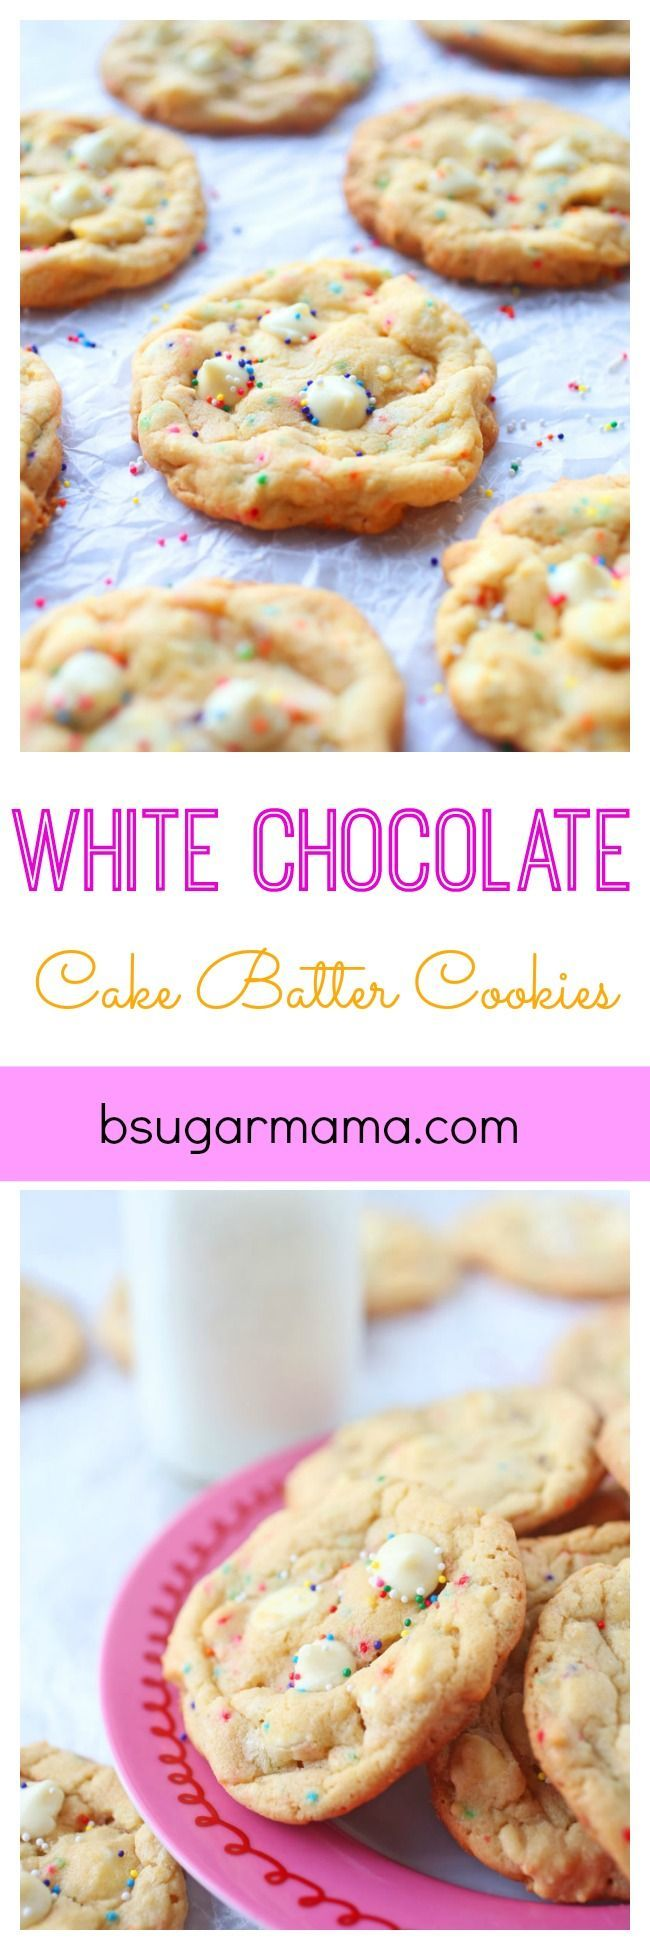 These White Chocolate Cake Batter Cookies are full of white chocolate chips and made with cake batter for an extra buttery flavor. You will love these white chocolate chip cookies.